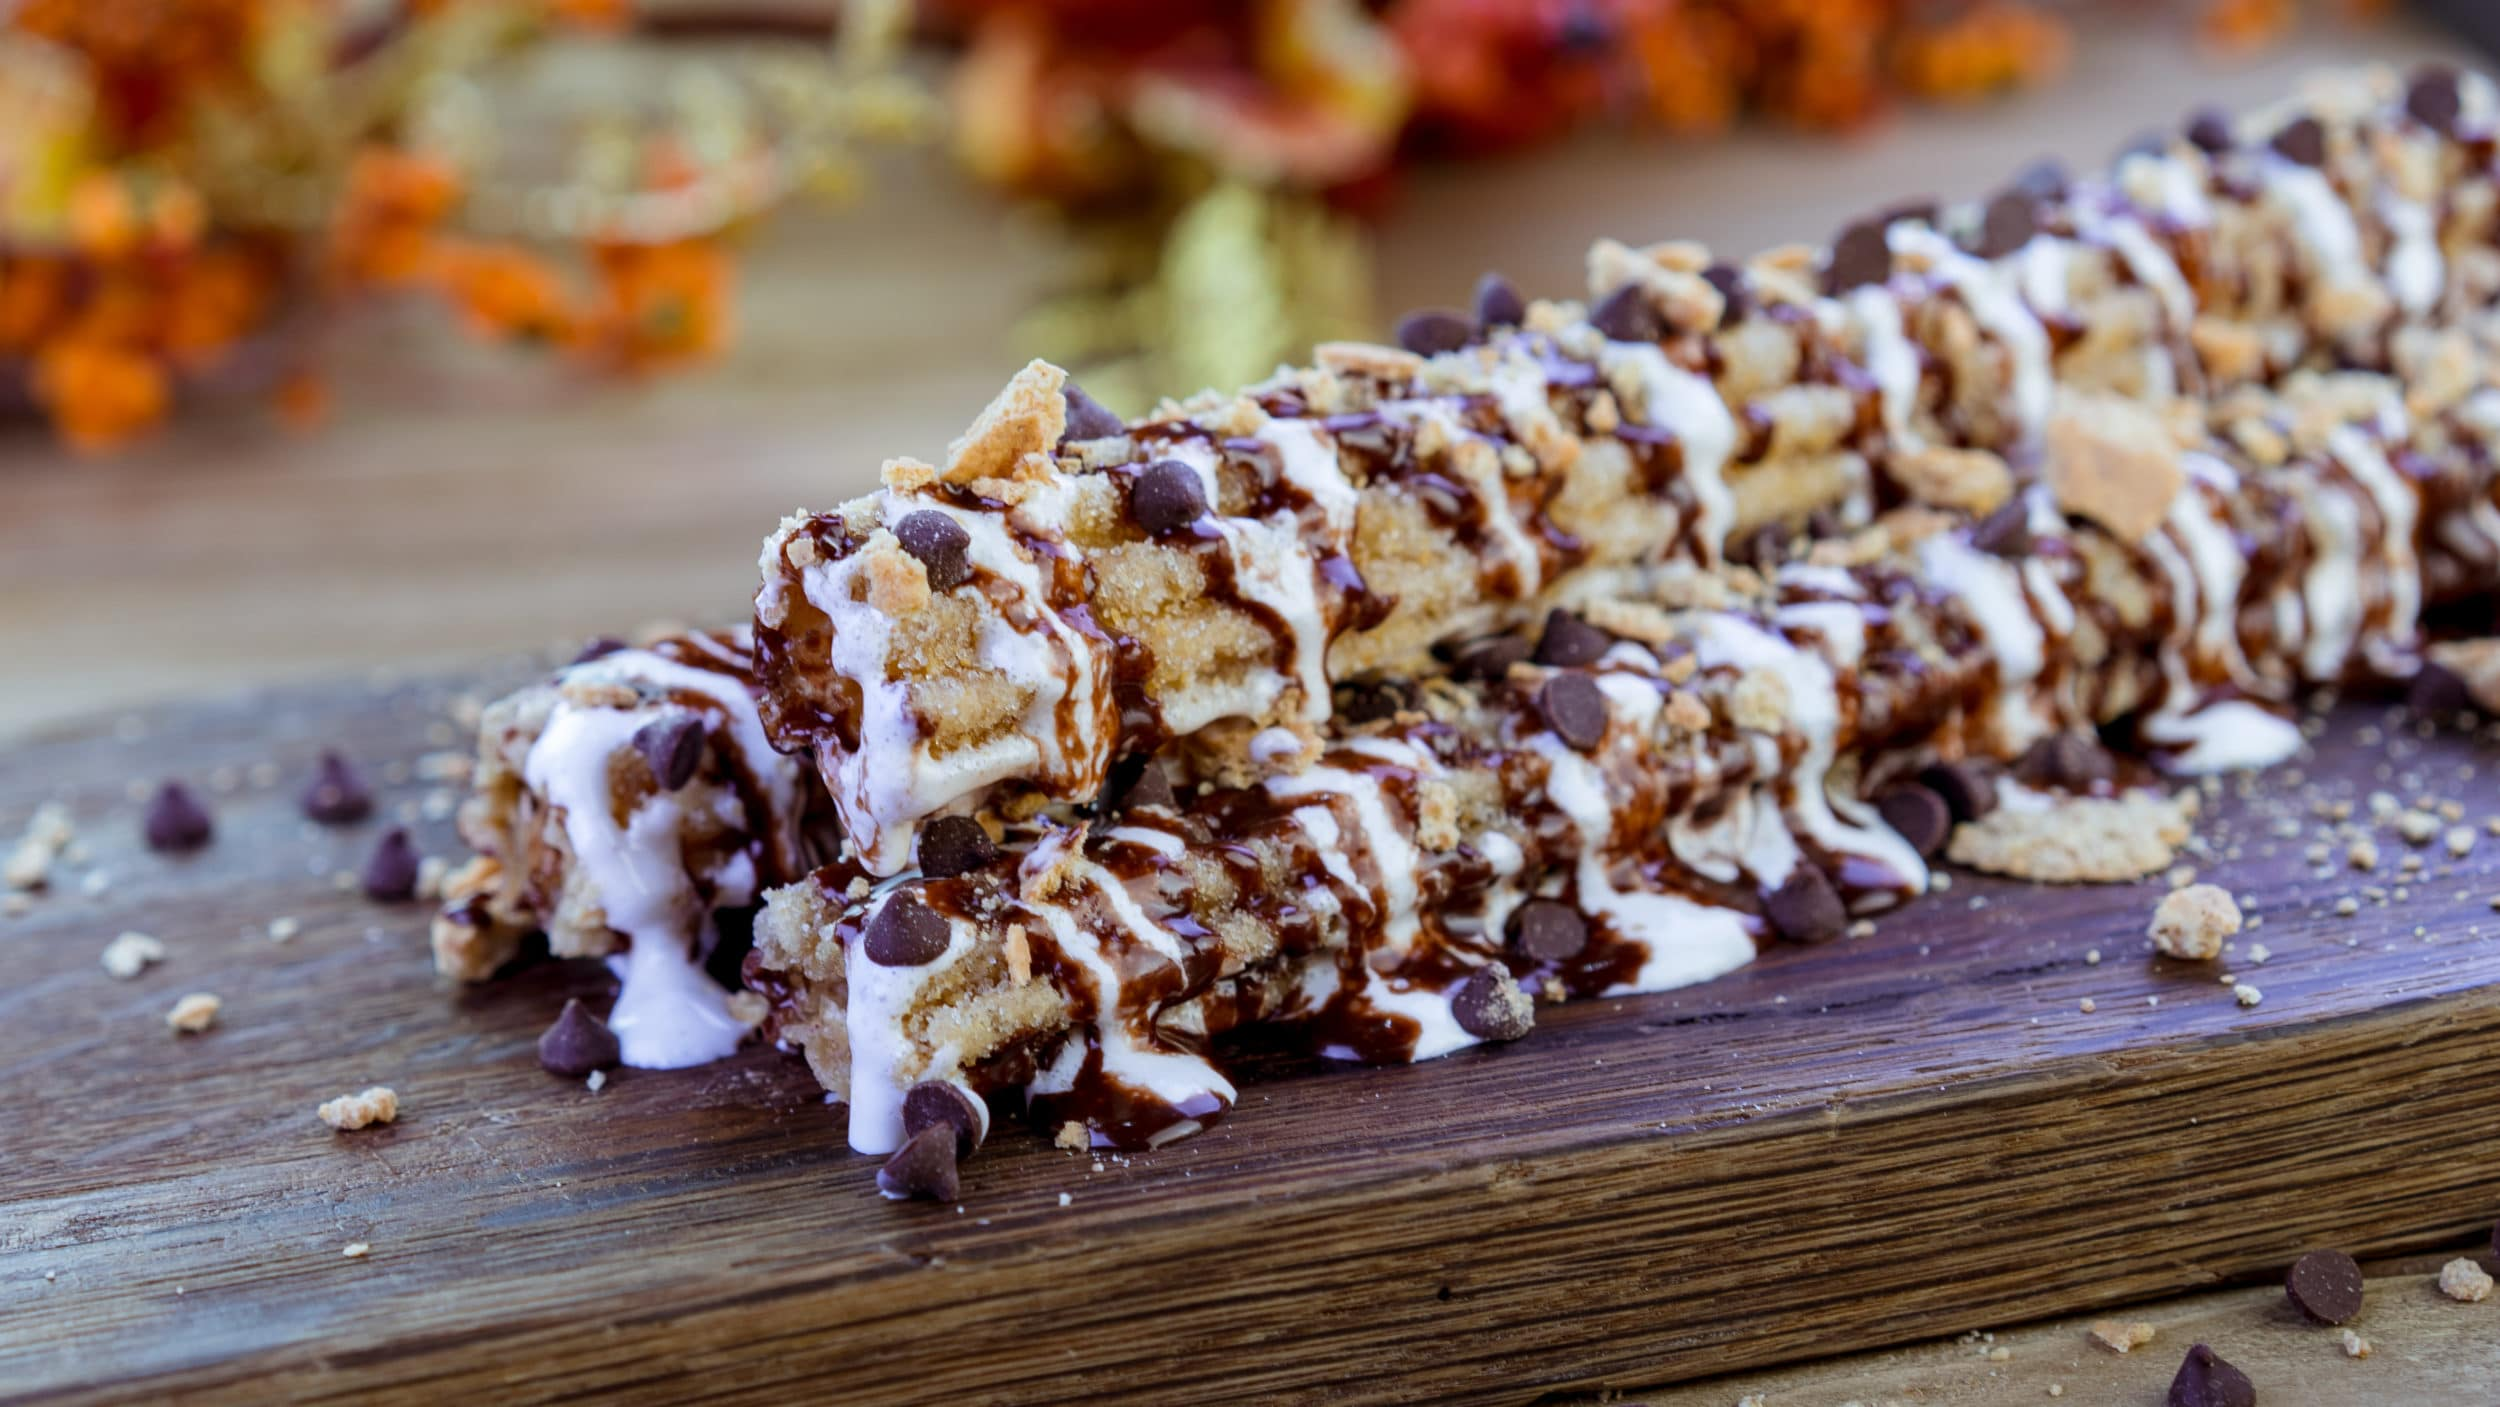 Disneyland Halloween food: S'mores churros